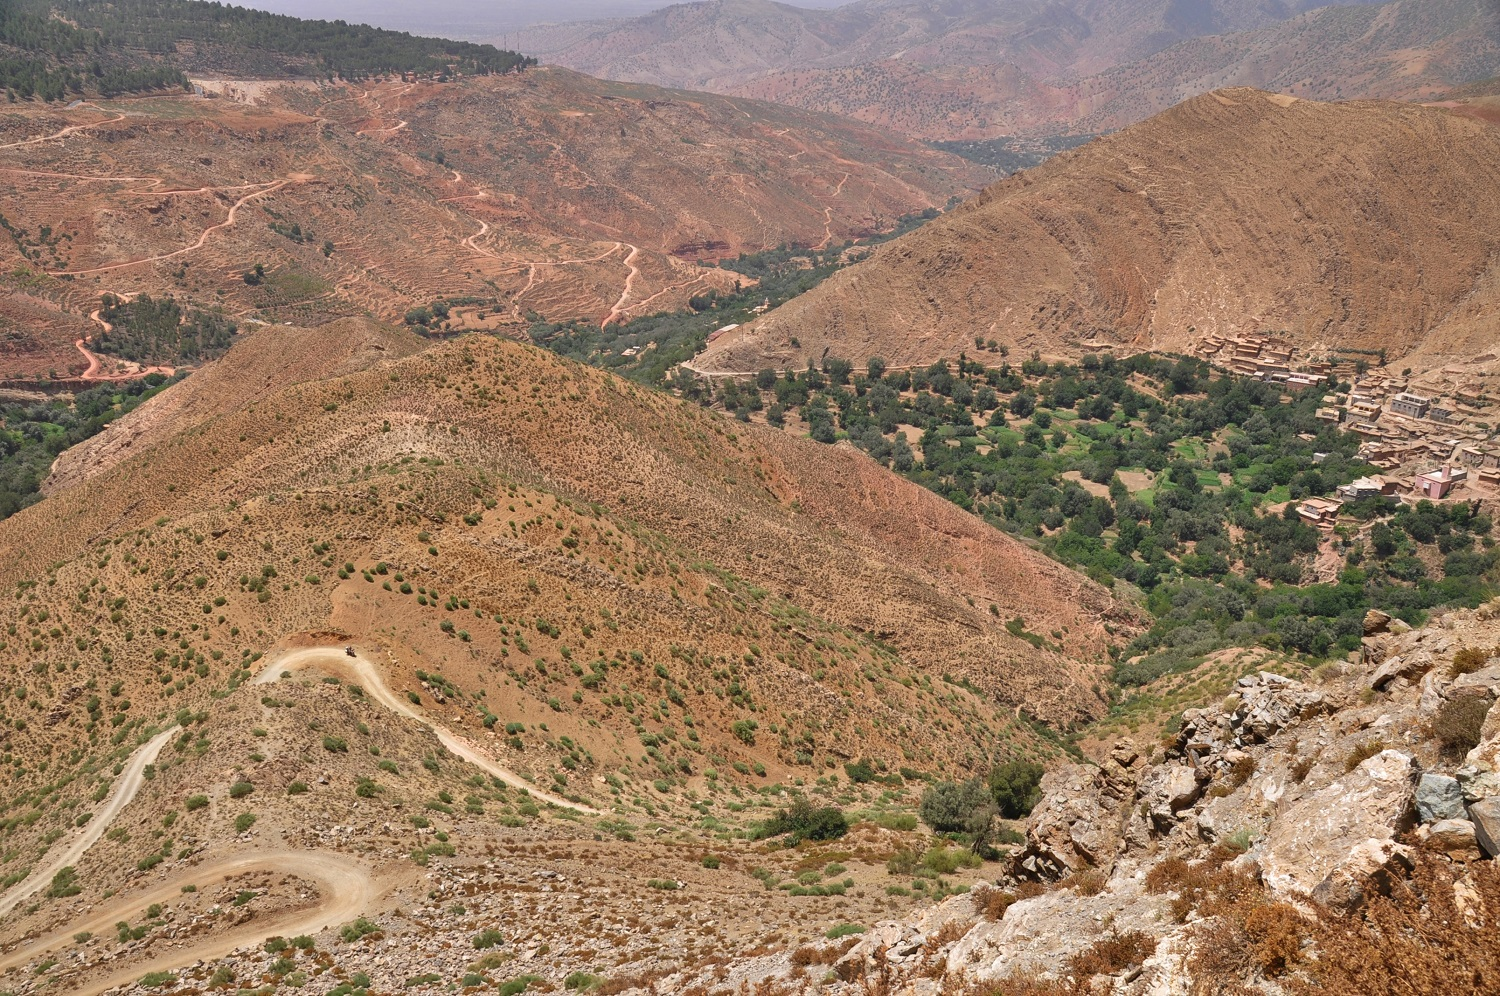 Phantastisches Atlas-Gebirge | Fantastic Atlas Mountains